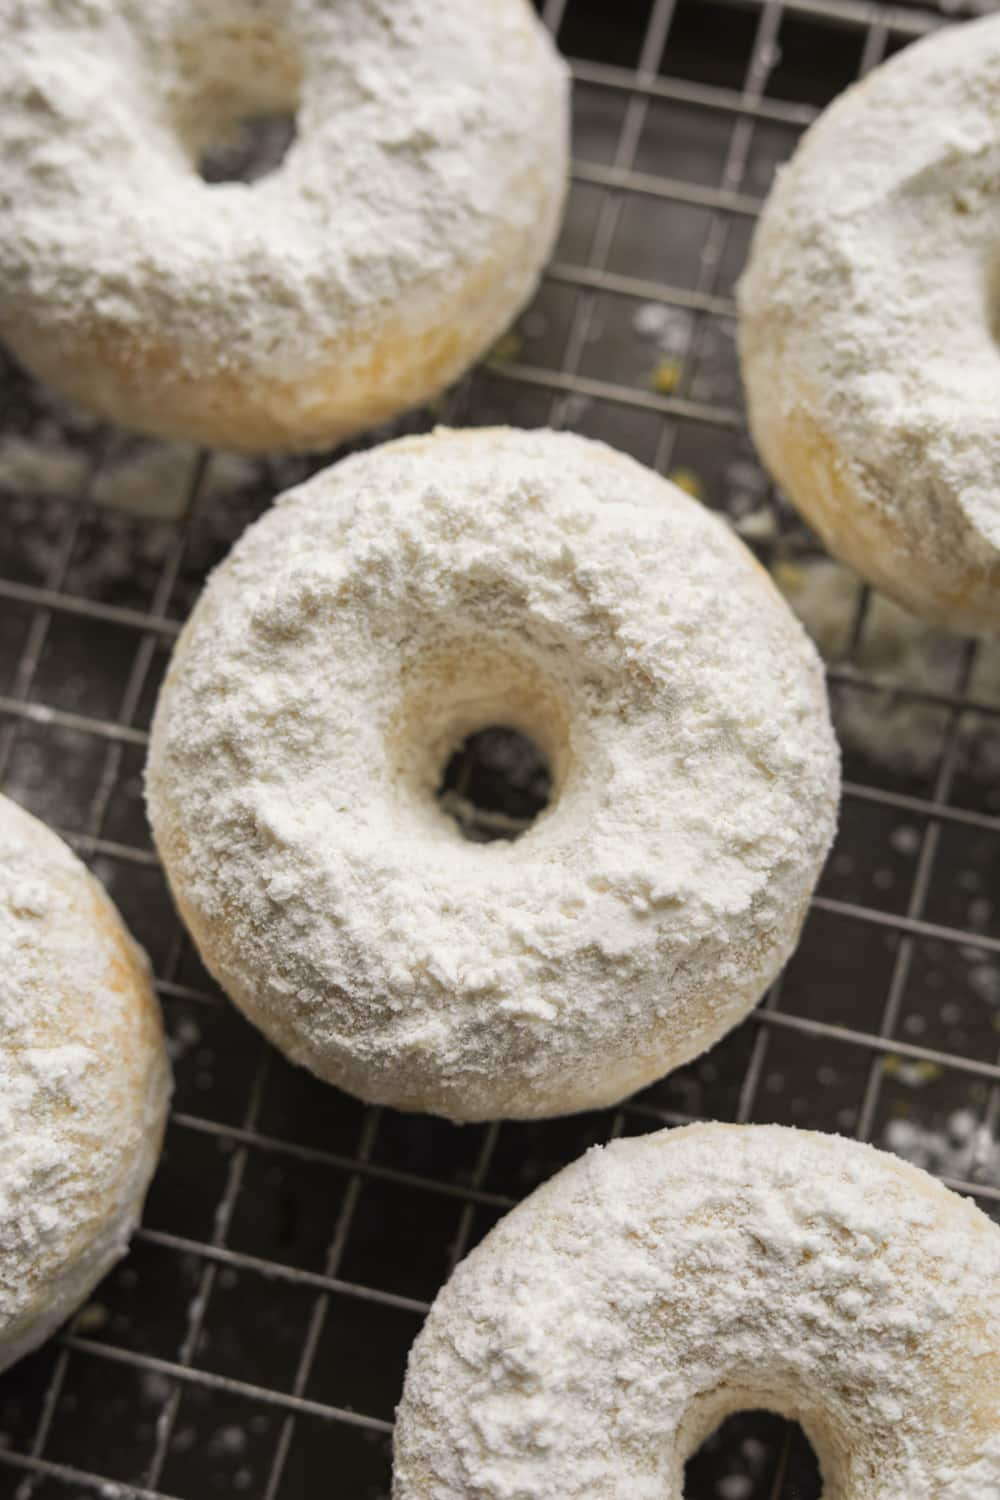 A powdered sugar donut on wire rack with other donuts around it.